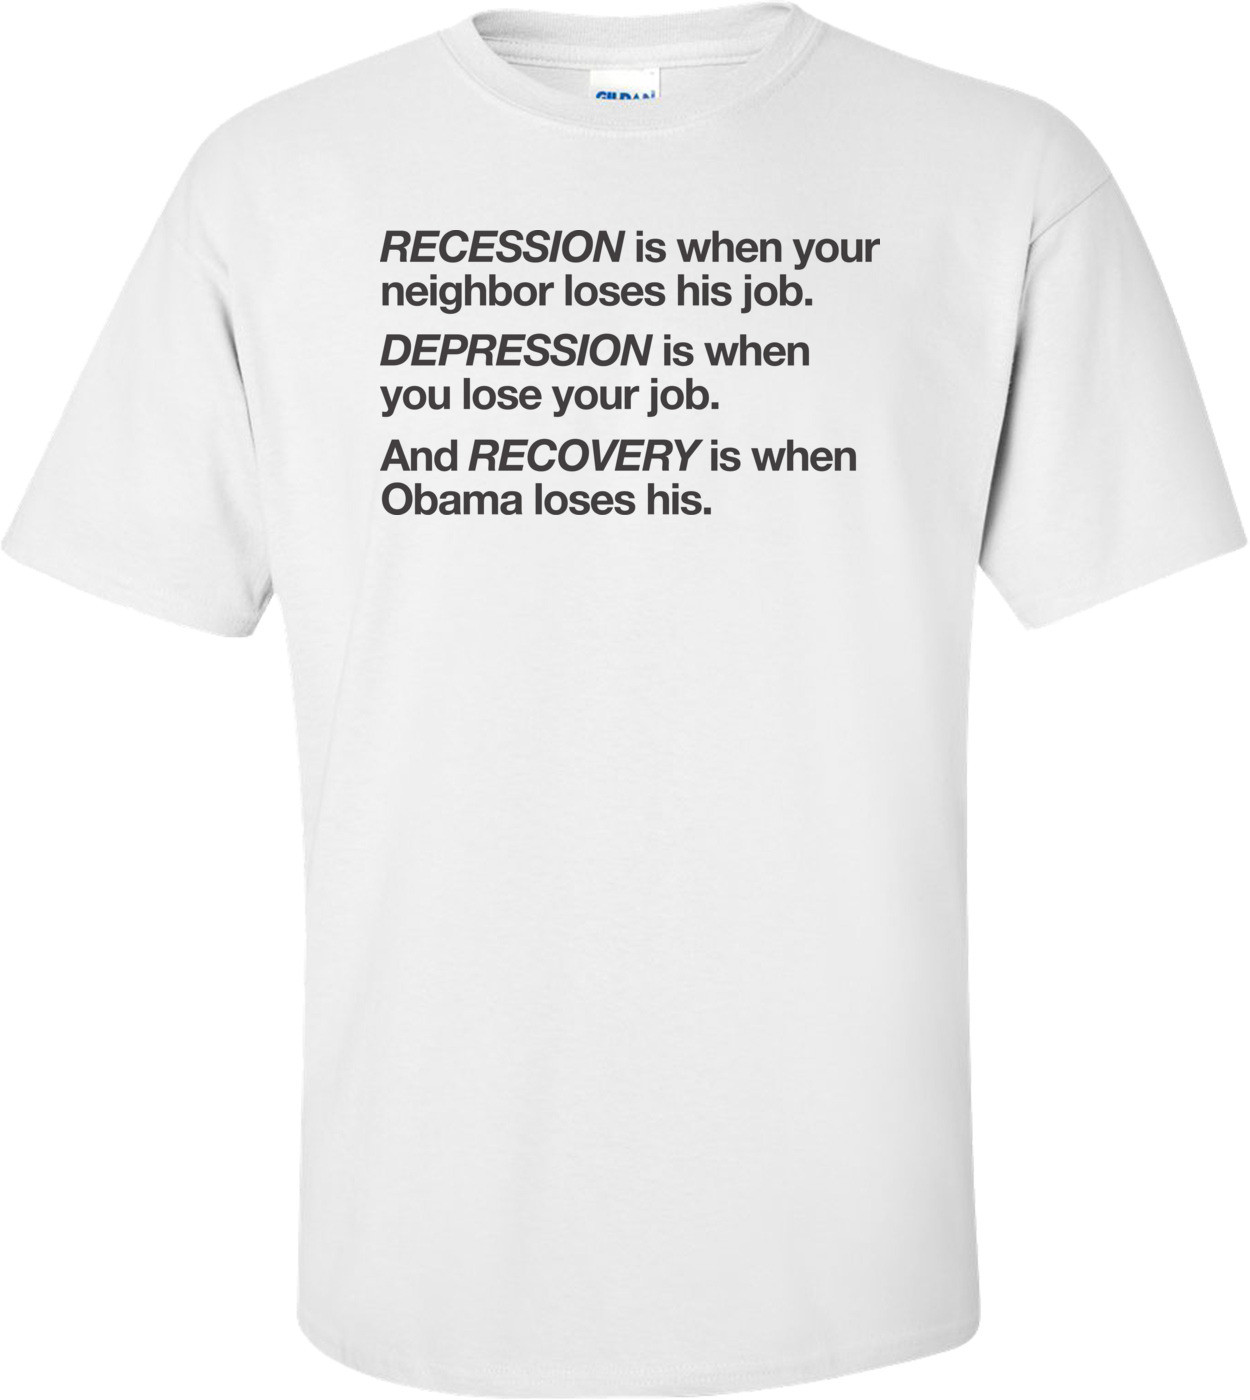 Recession Is When Your Neighbor Loses His Job Depression Is When You Lose Your Job And Recovery Is When Obama Loses His Anti-obama